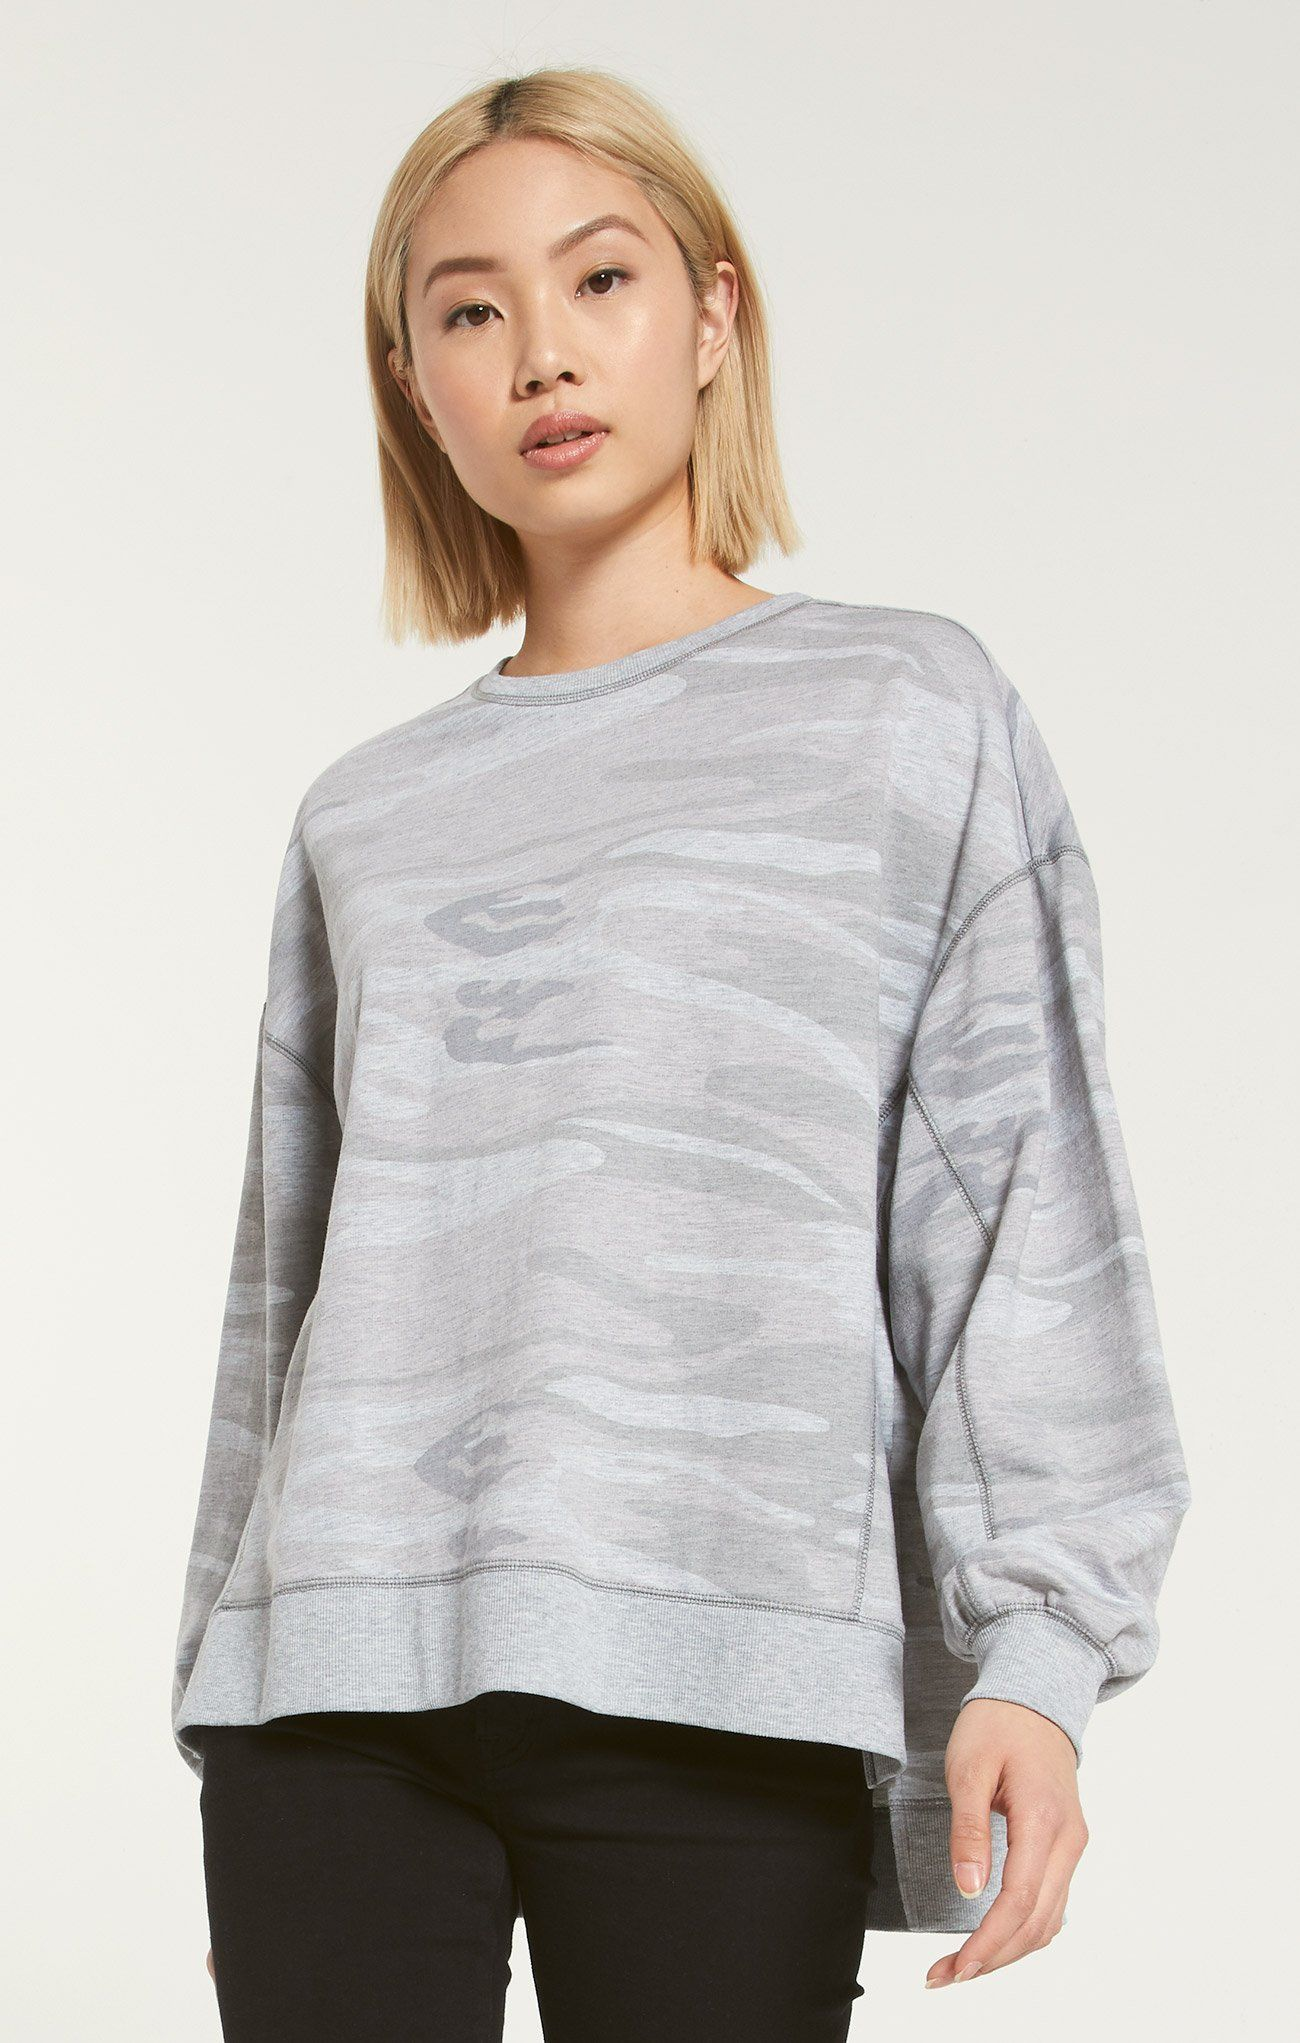 Modern Camo Weekender In 2020 Comfy Sweatshirt French Terry Fabric Relaxed Style